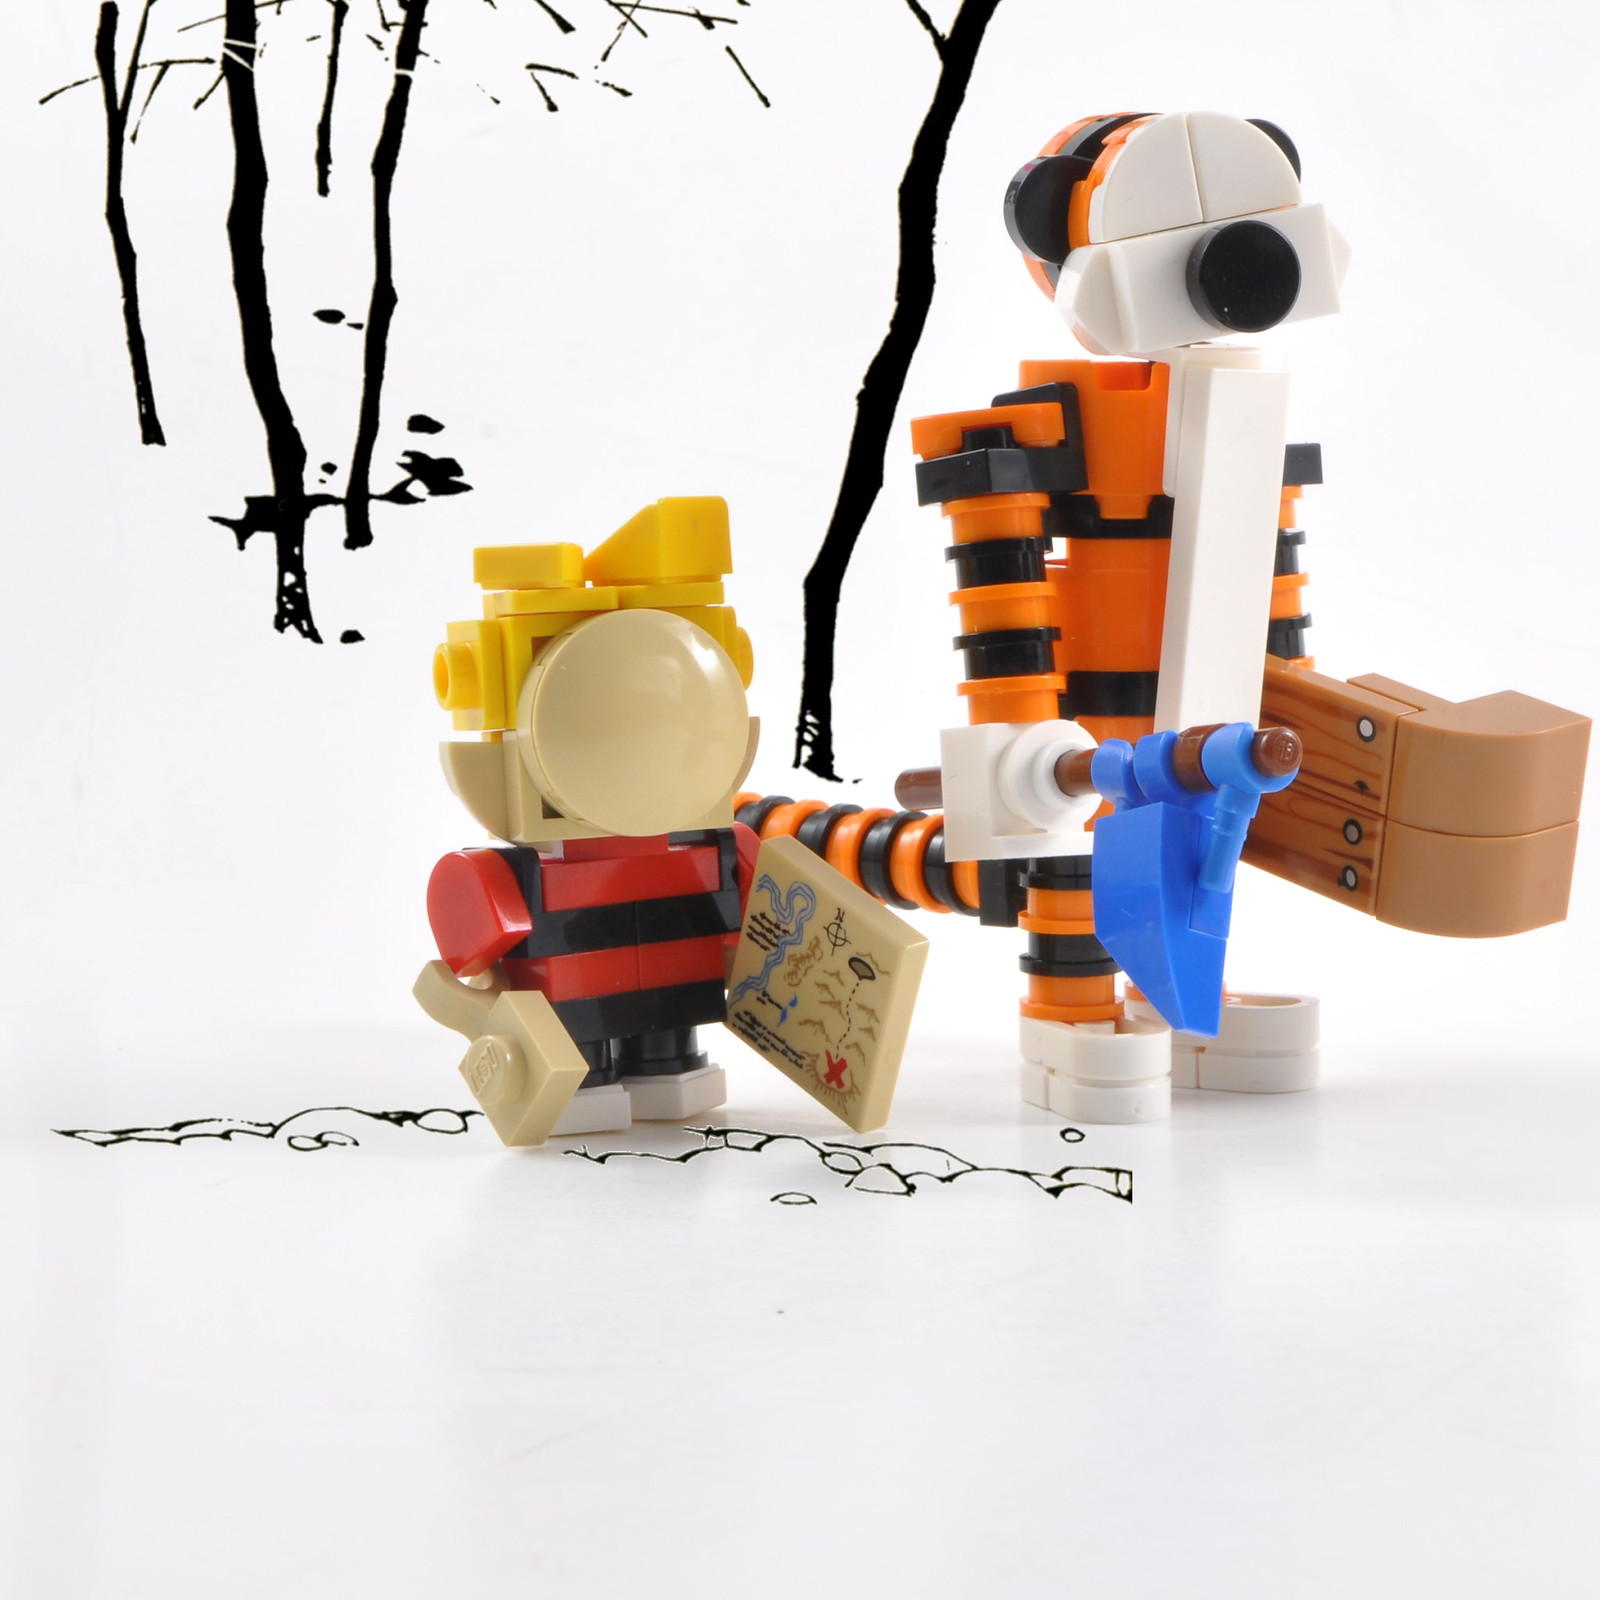 Calvin and Hobbes - Off to an Adventure